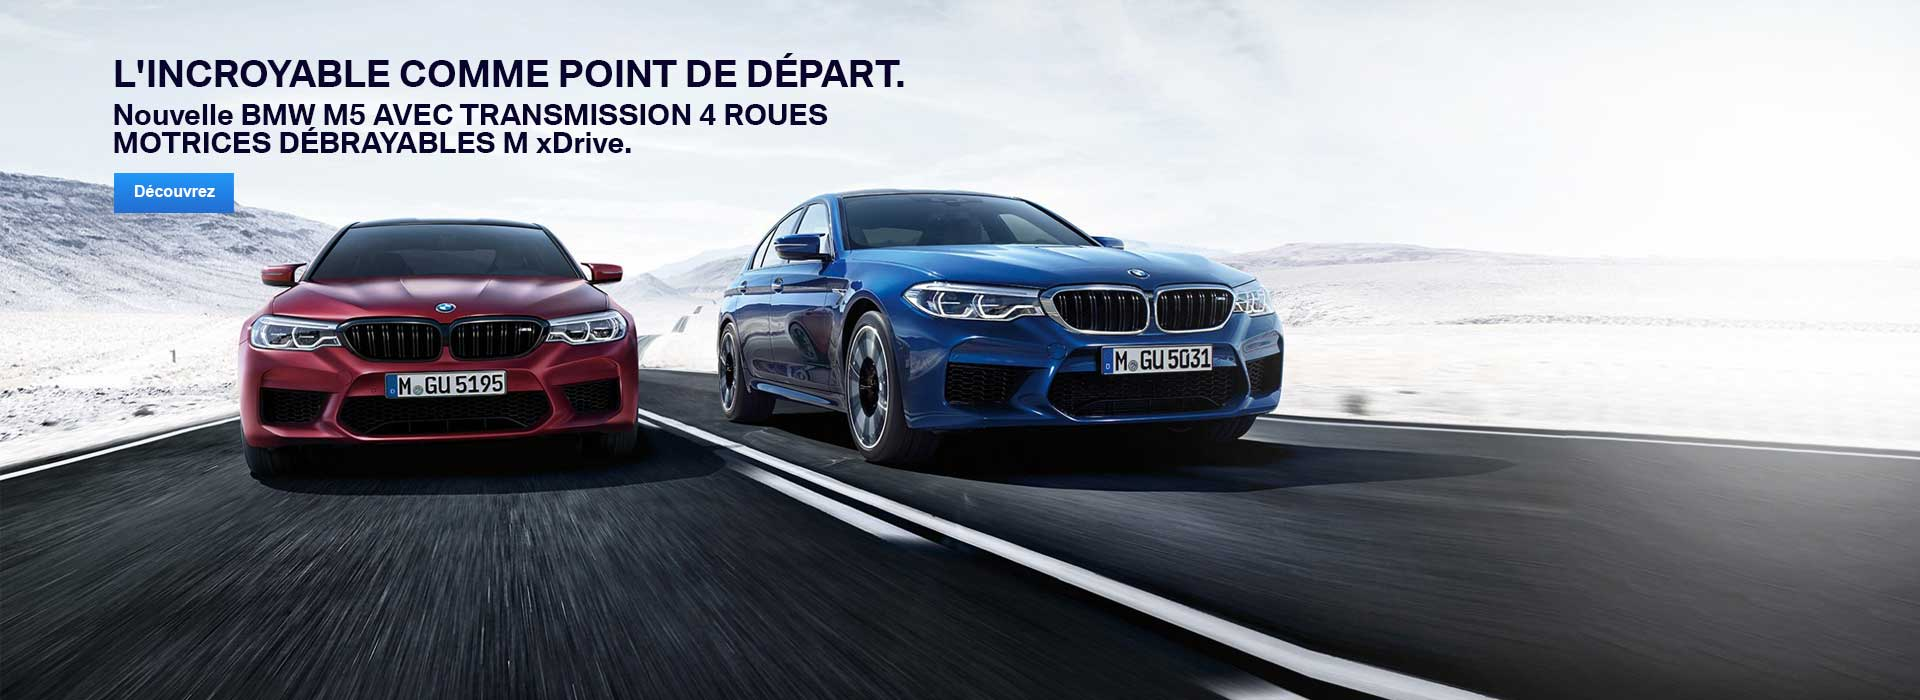 Bmw dax concessionnaire garage landes 40 for Garage concessionnaire bmw